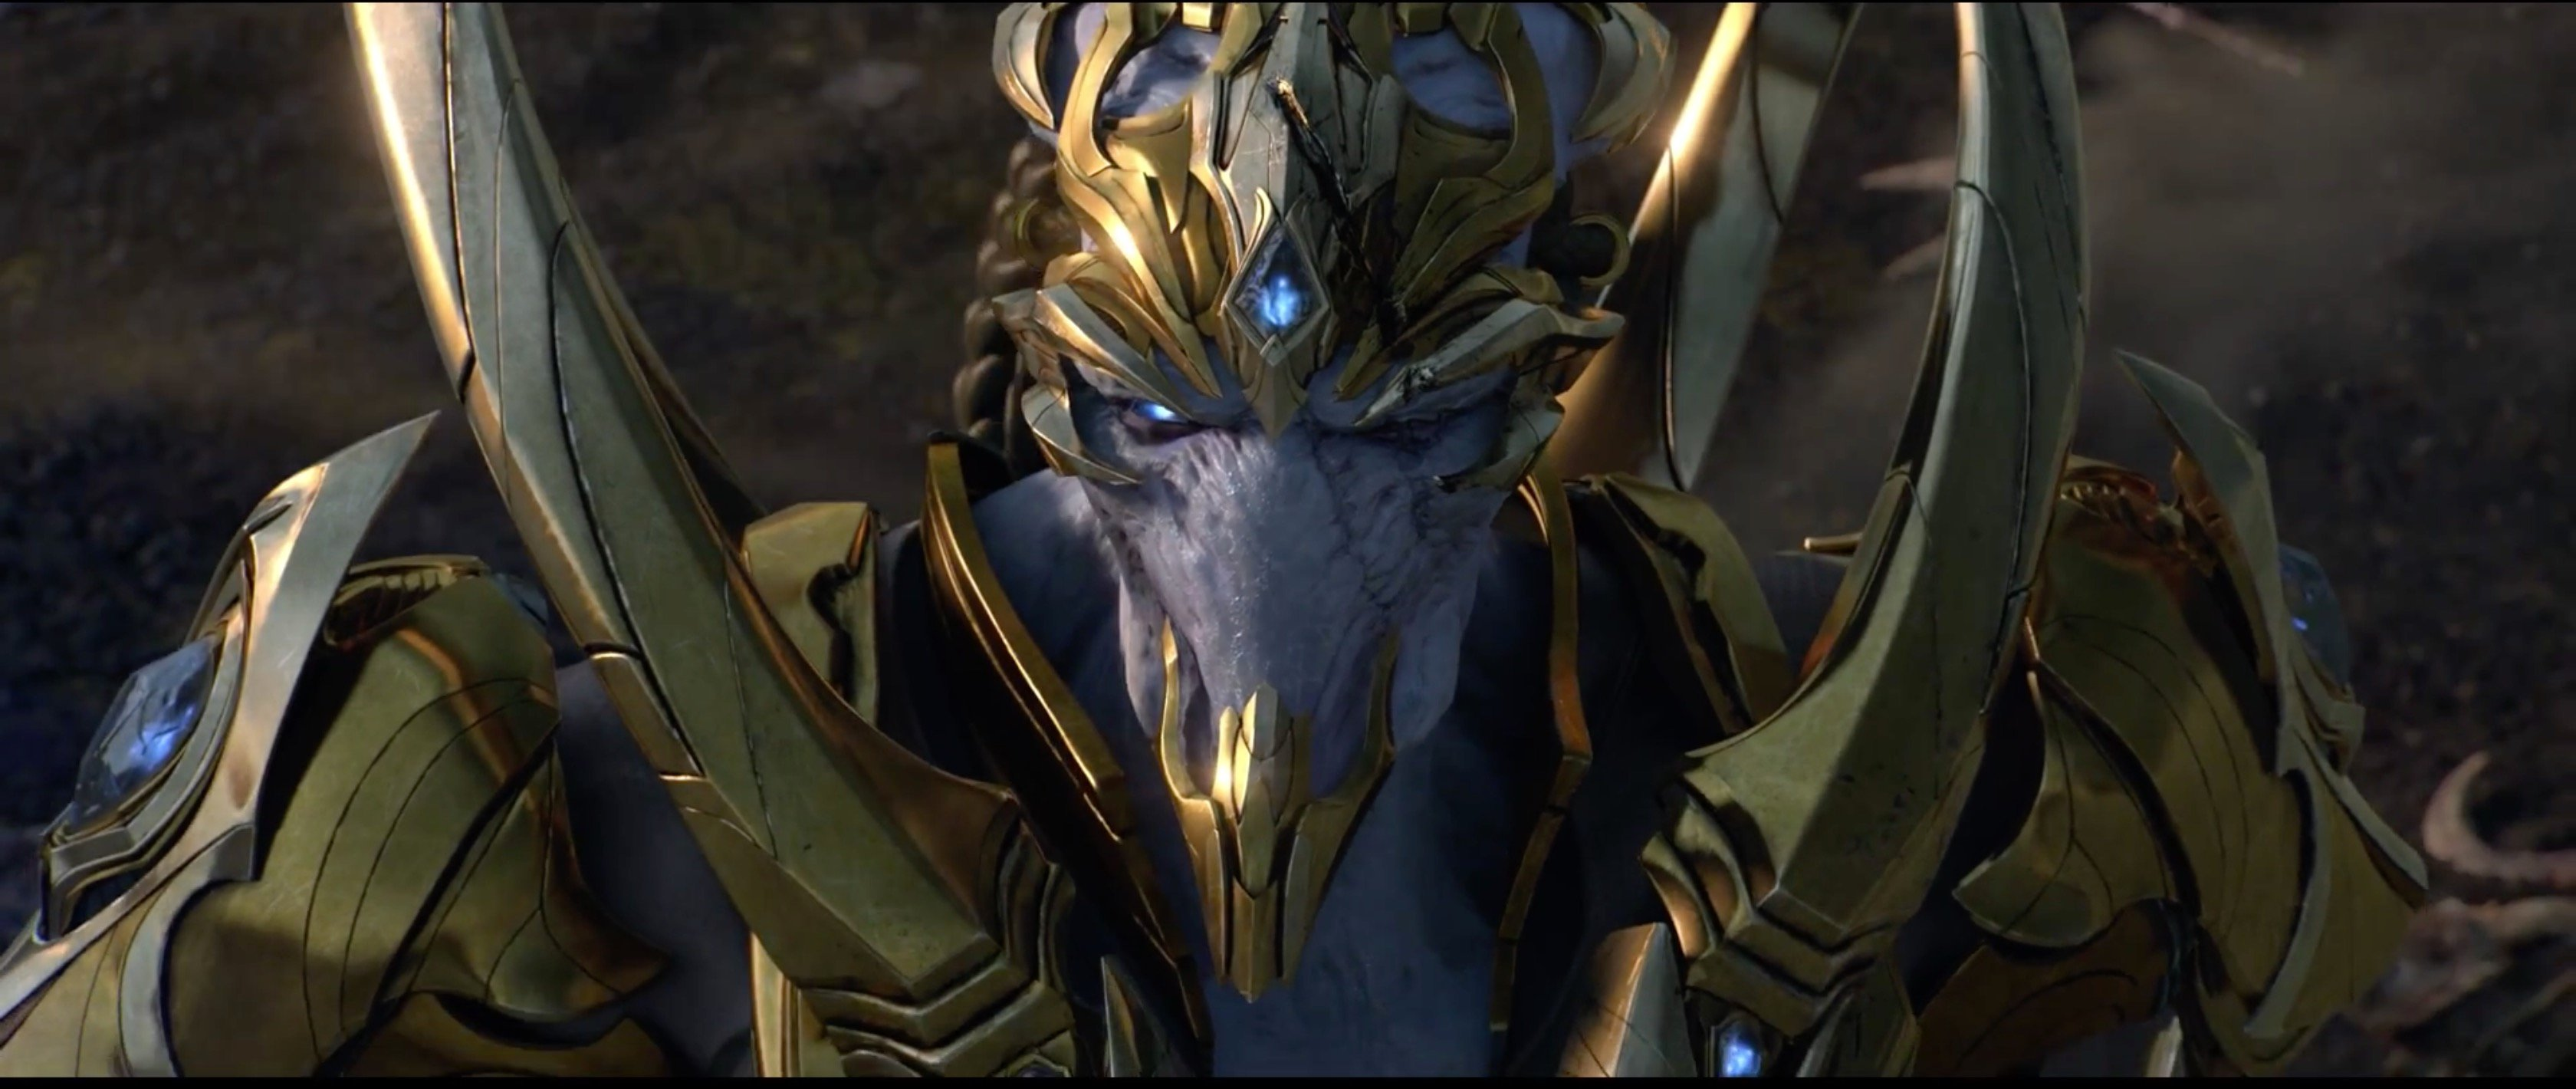 Starcraft Protoss Wallpaper posted by Michelle Thompson 3360x1420